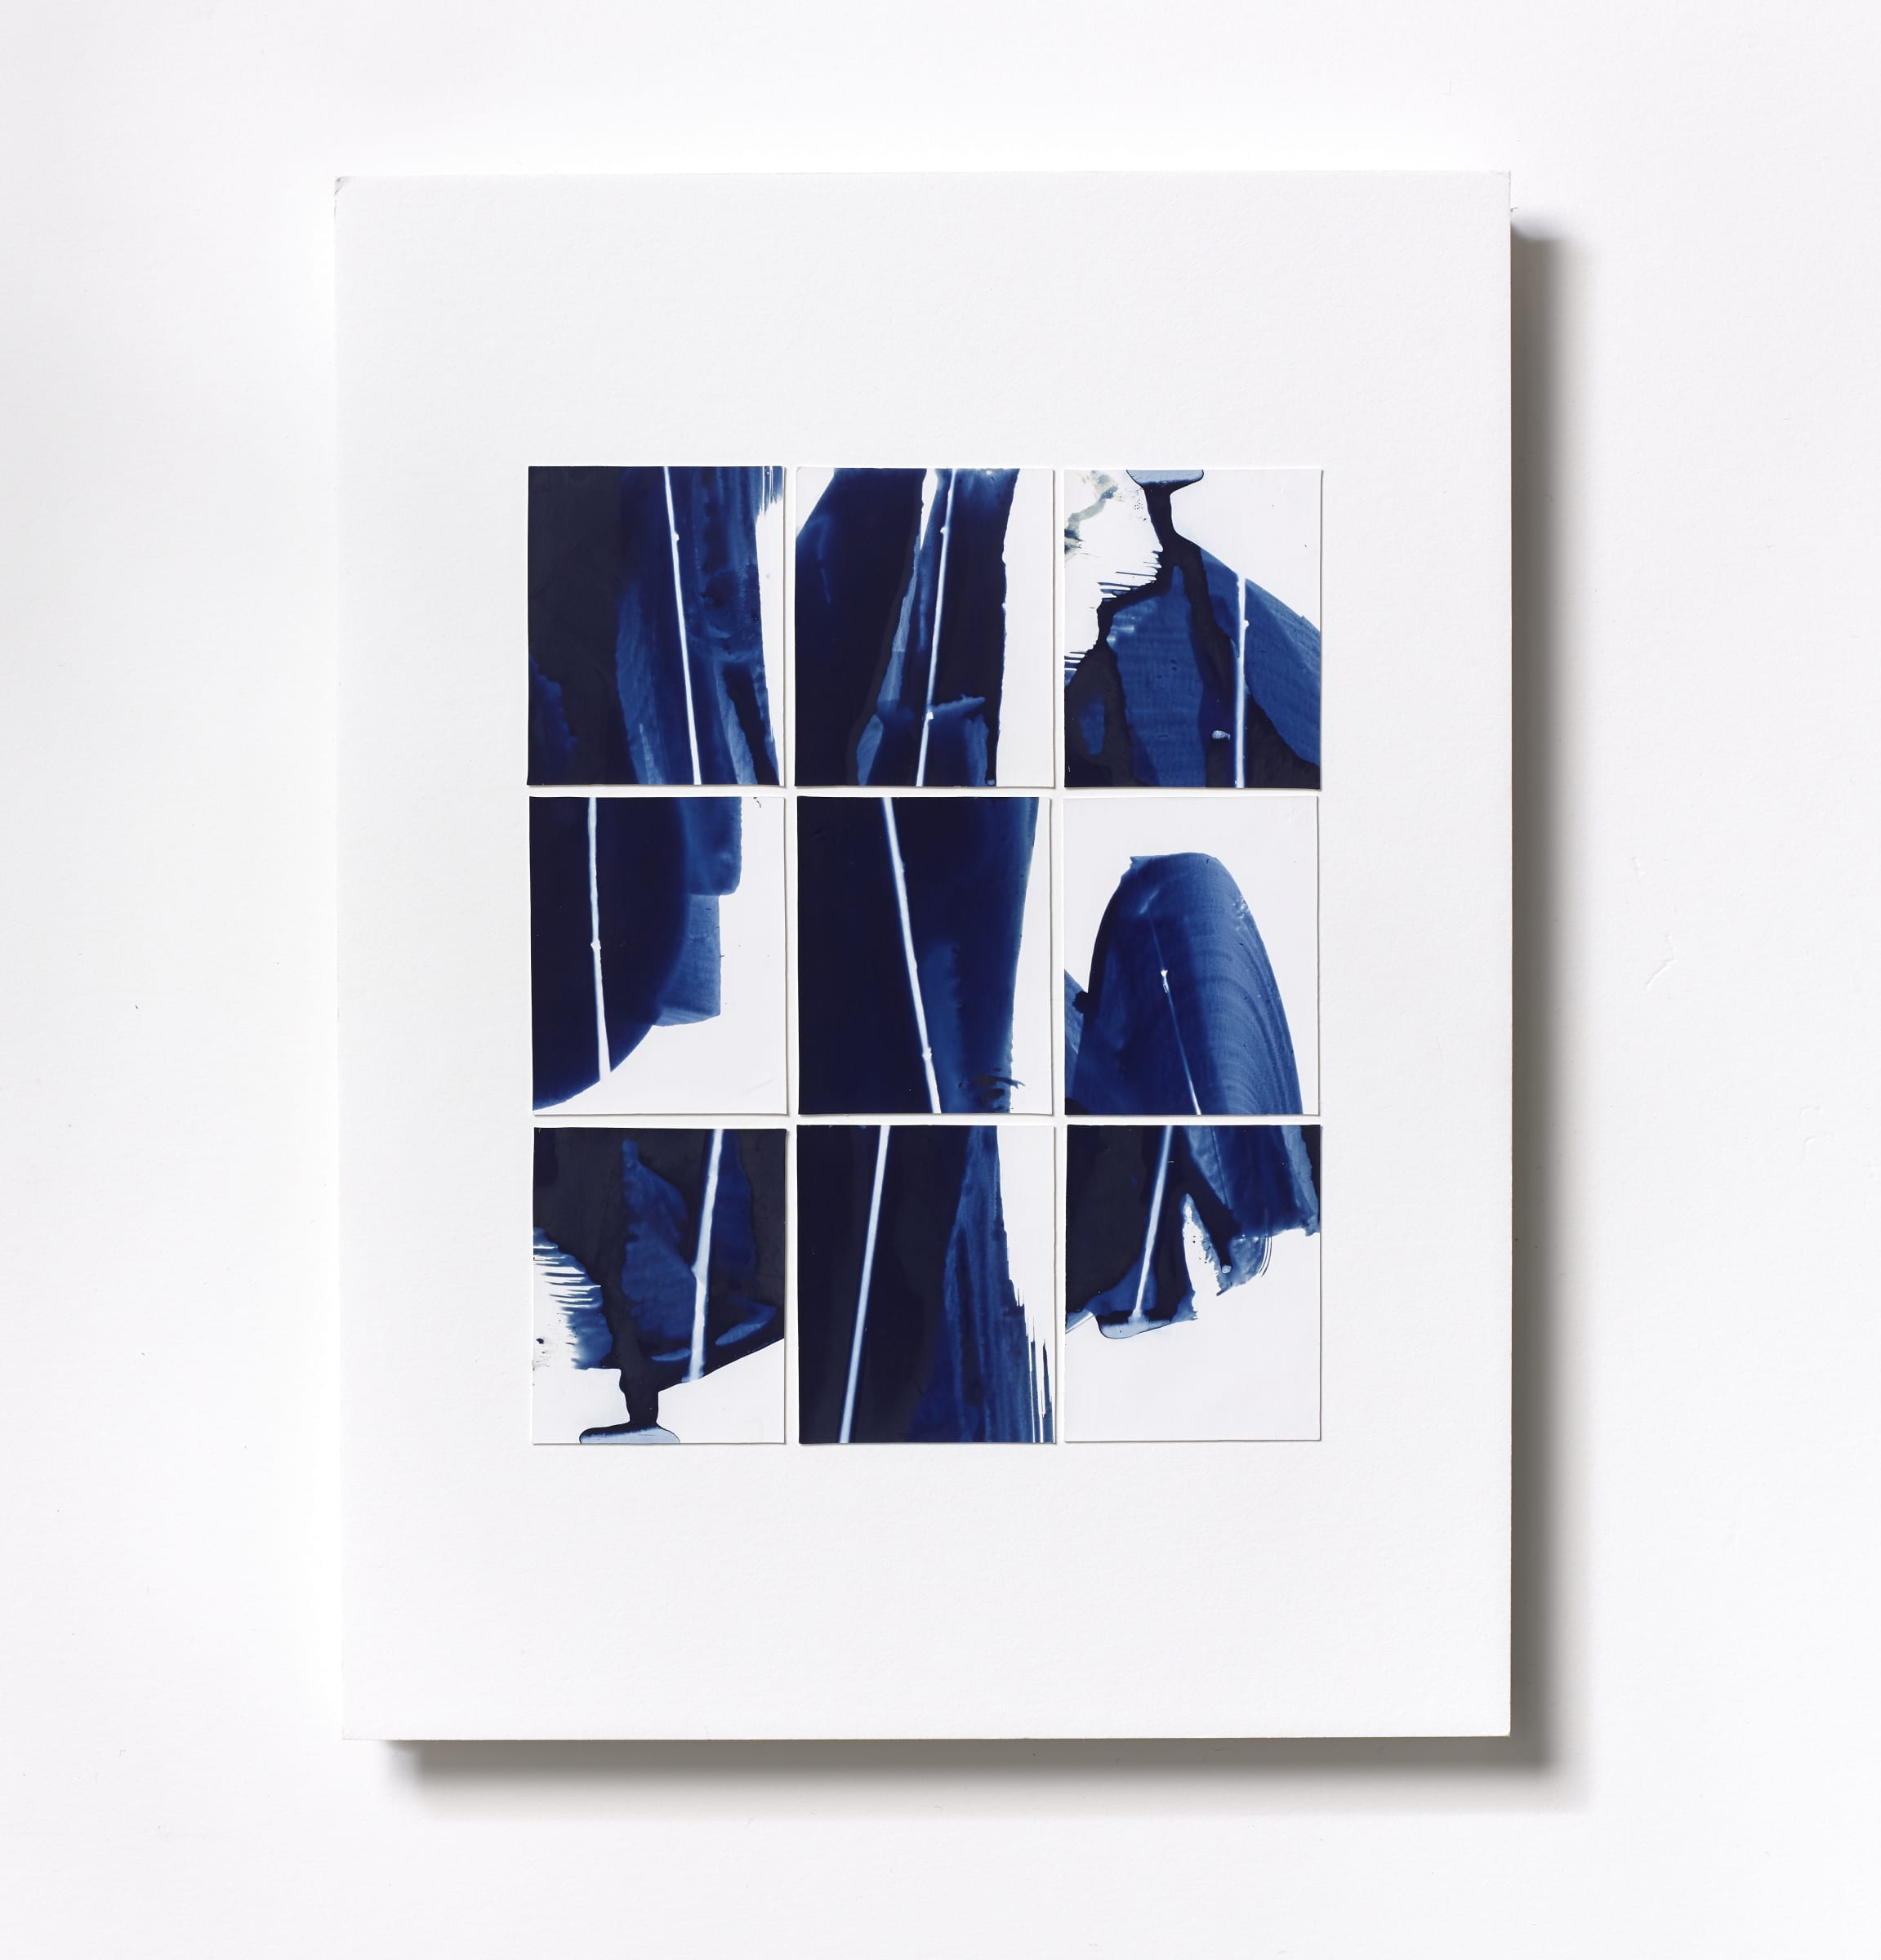 "<span class=""link fancybox-details-link""><a href=""/content/feature/119/artworks577/"">View Detail Page</a></span><div class=""medium"">Cyanotype Collage of nine hand-painted 2 7/8"" x 1 7/8"" cyanotype photograms on a 12 x 9 inch 8-ply museum board<br /> Print only<br /> Unique</div> <div class=""dimensions"">30.5 x 22.9 cm<br /> 12 x 9 in</div>"